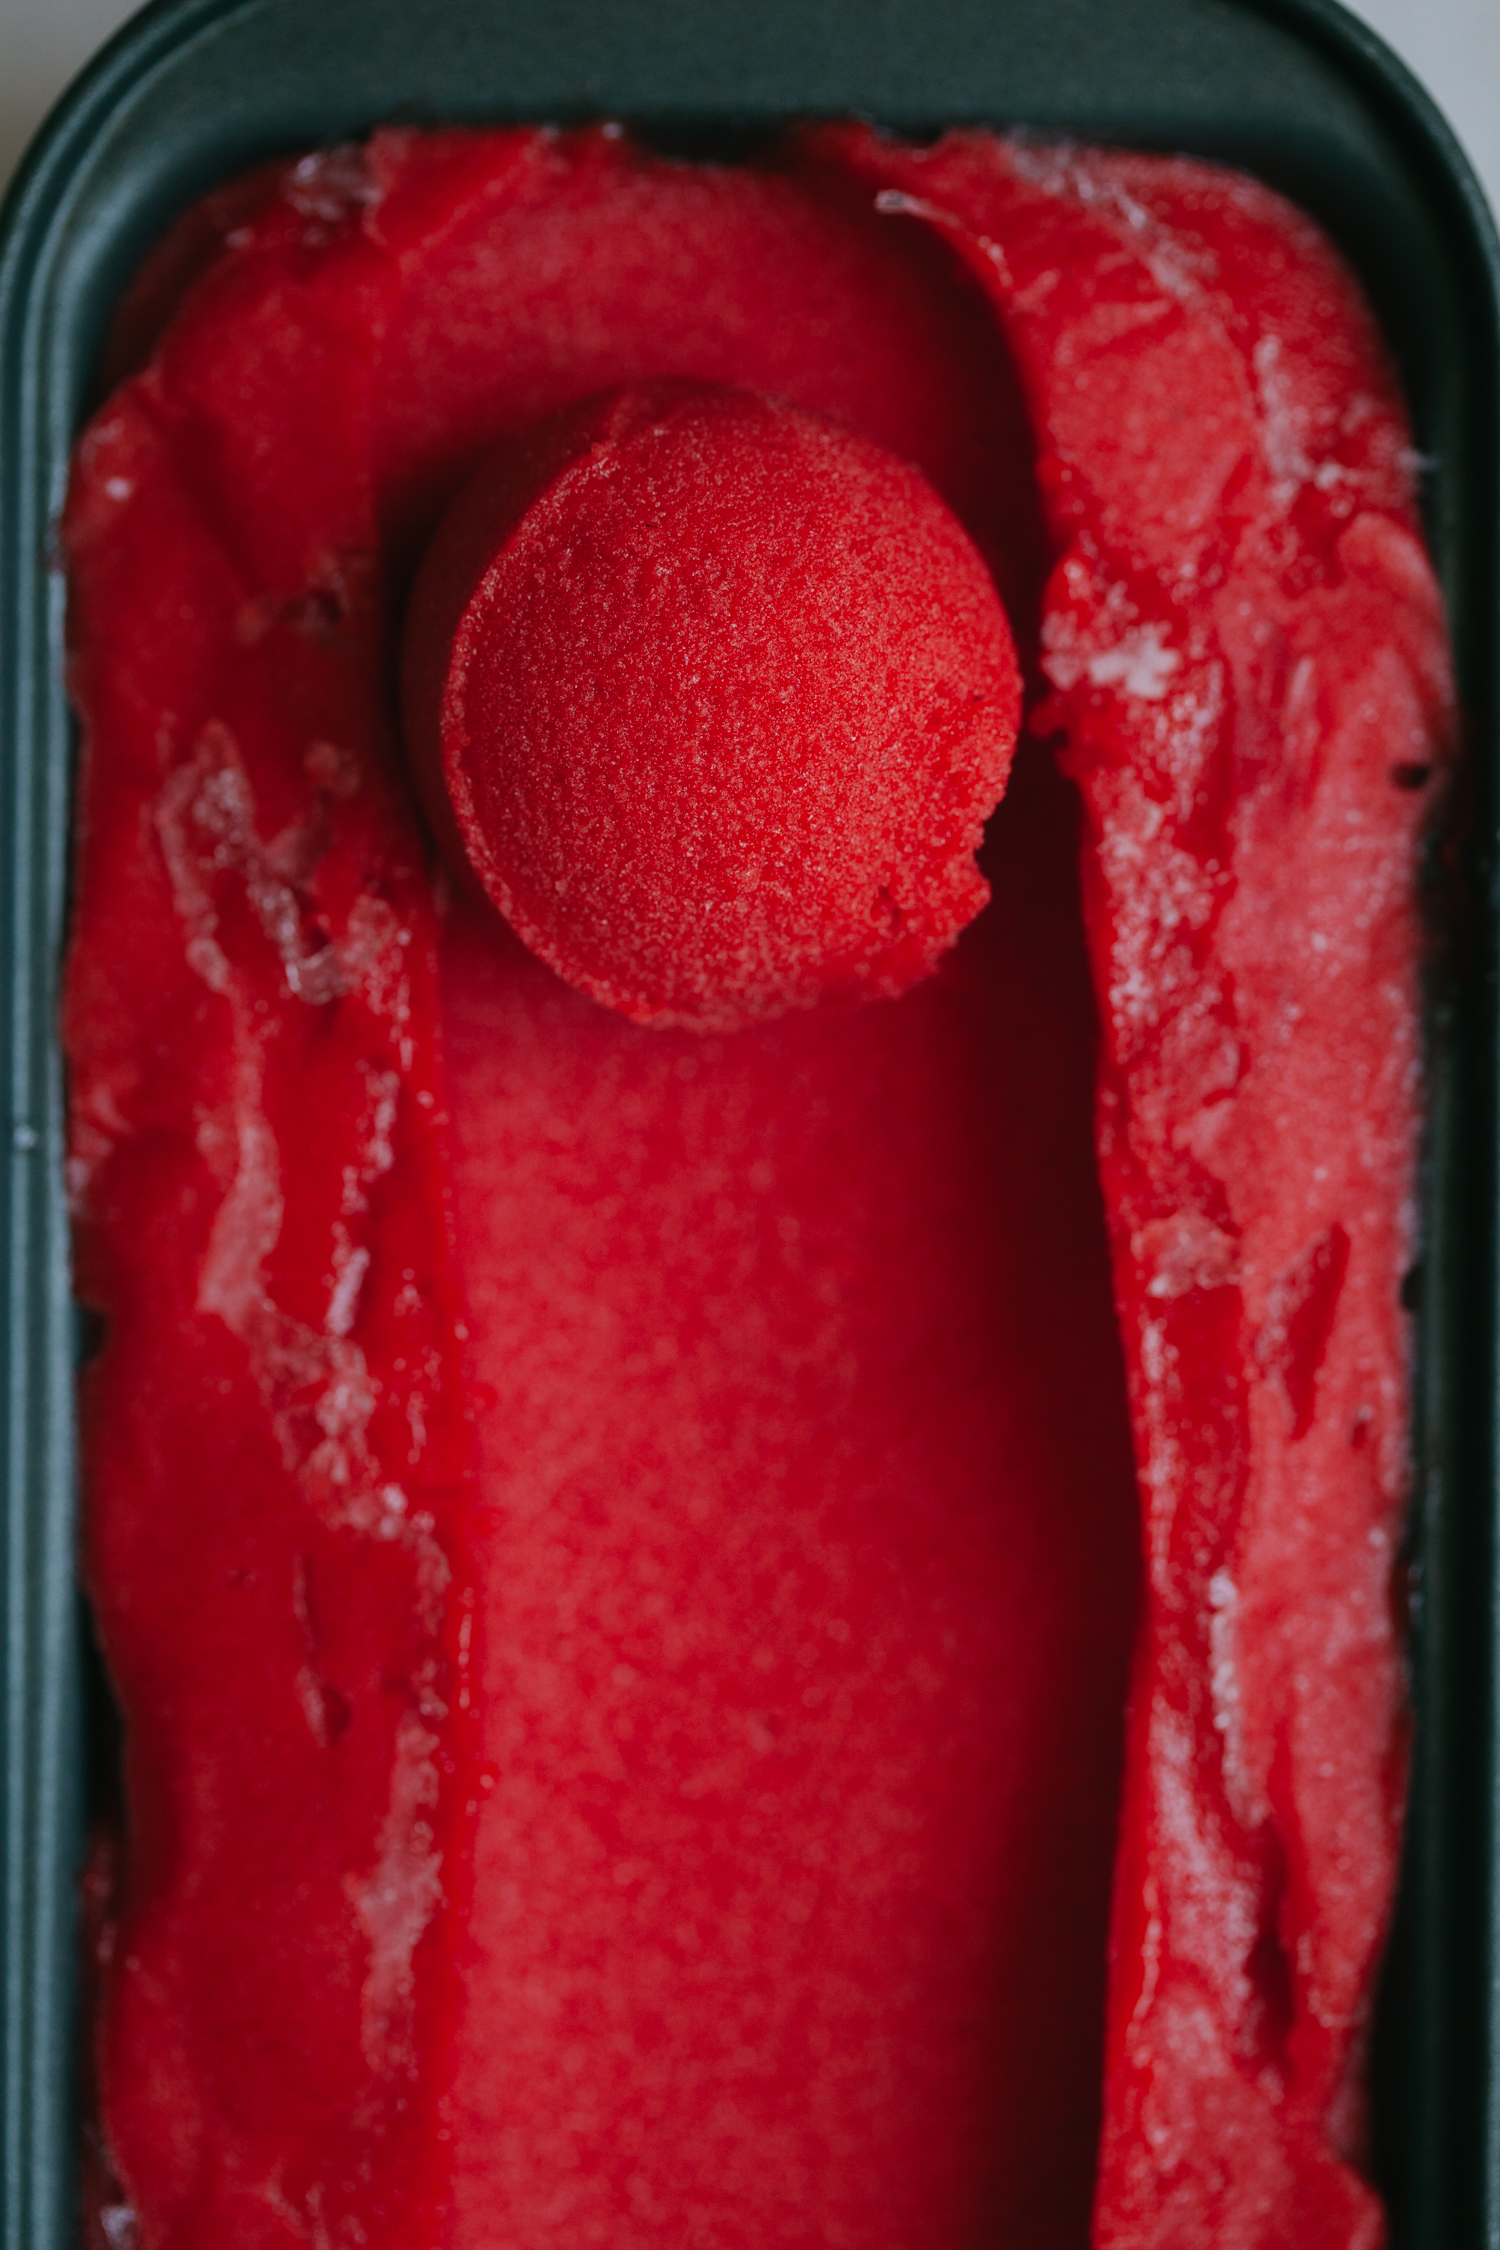 Strawberry Thai Basil Sorbet